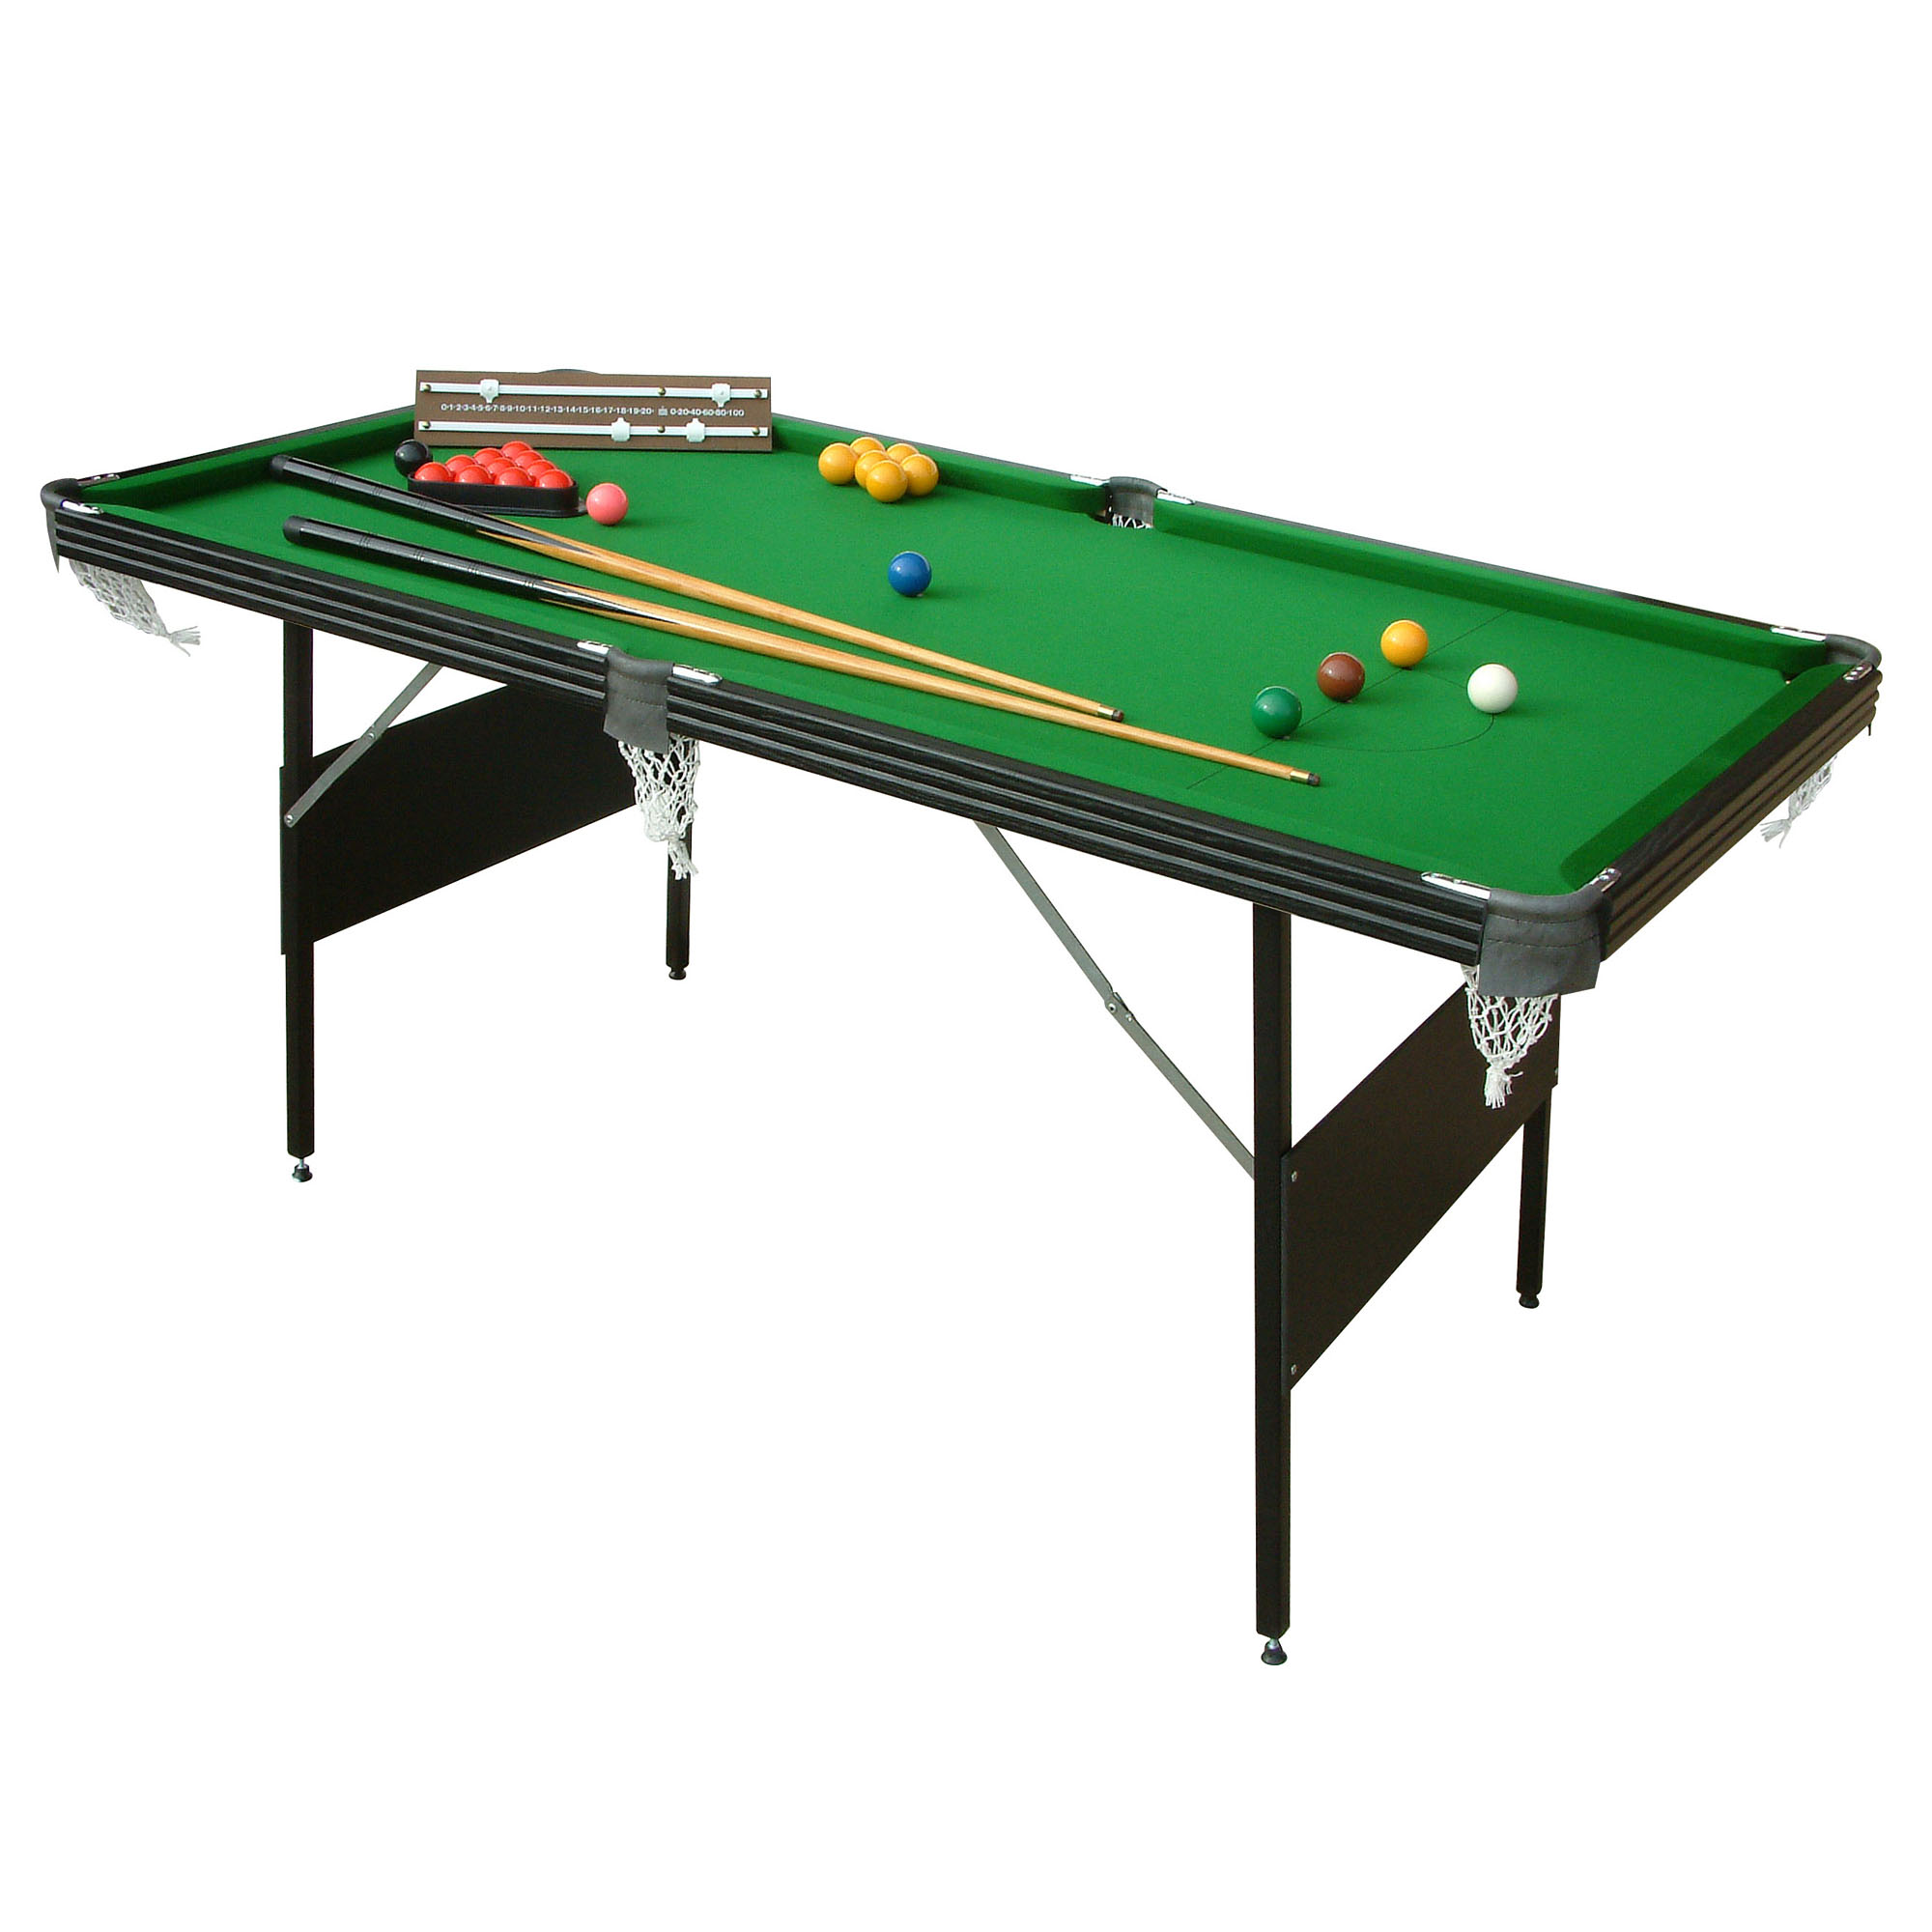 Mightymast 6ft Crucible 2 in 1 Snooker and Pool Table